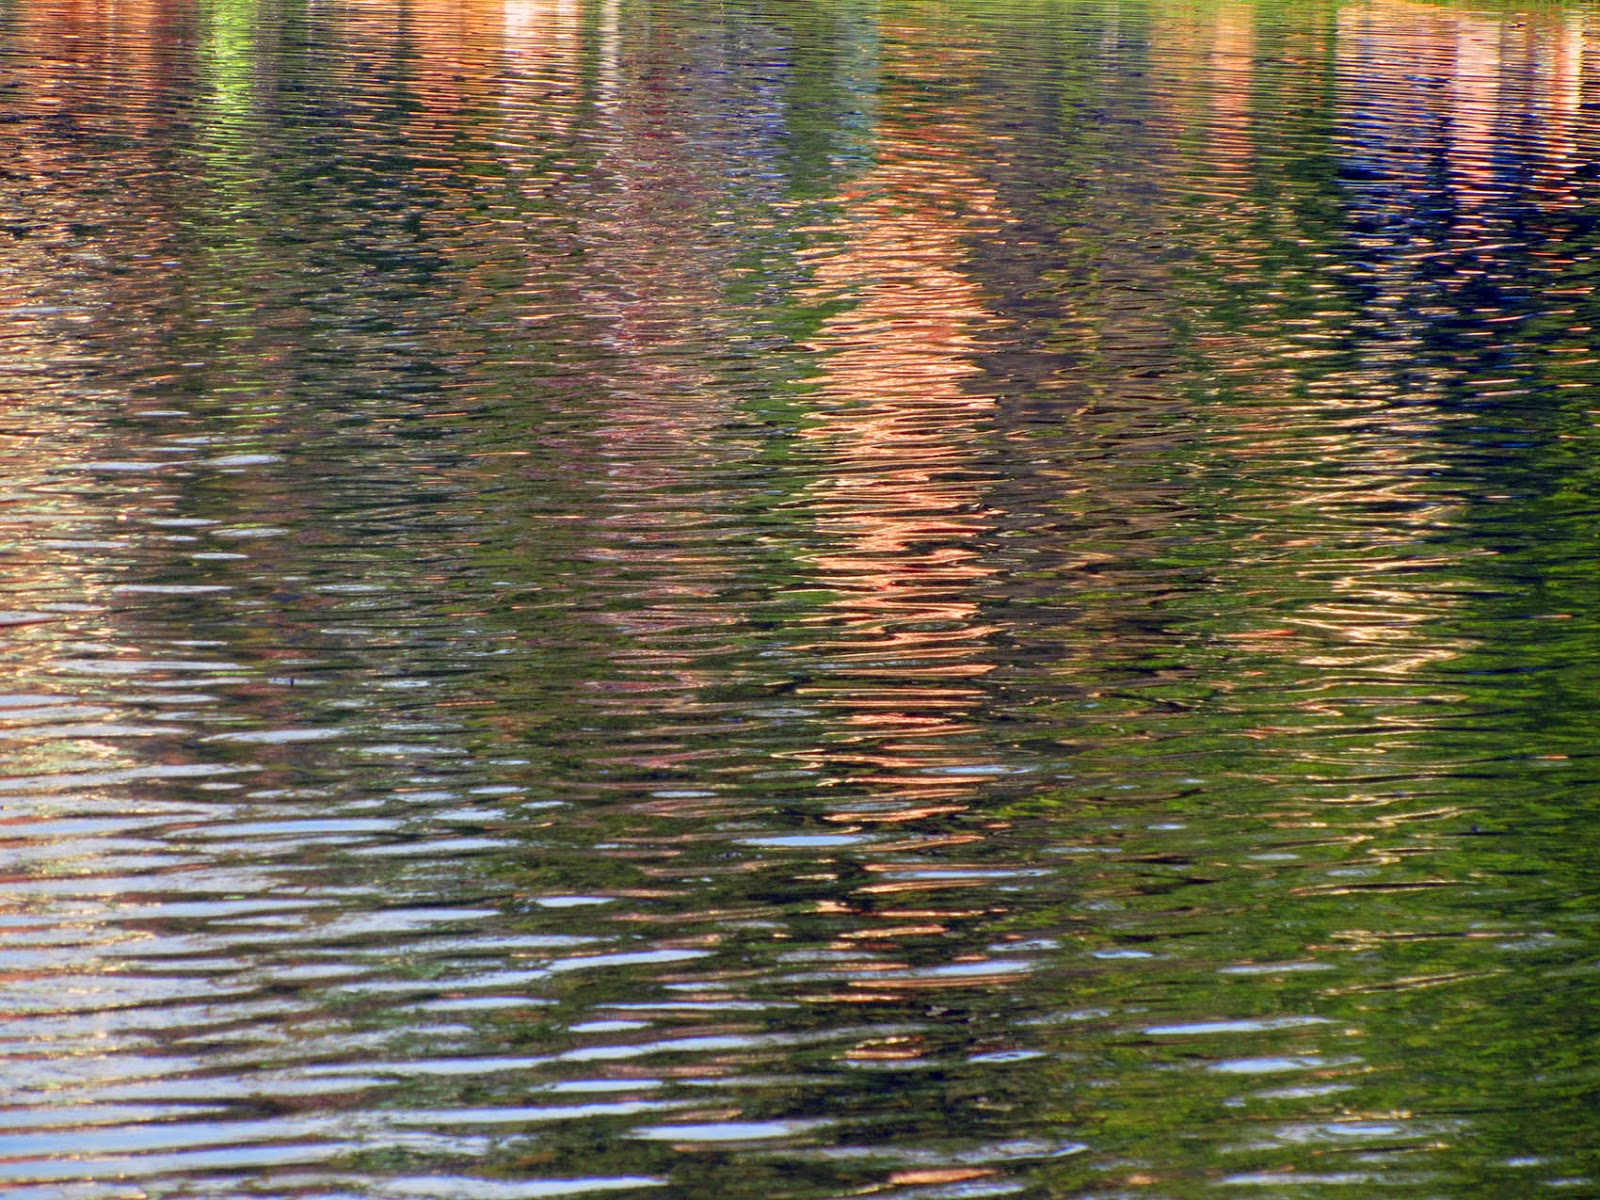 reflections of buildings in a pond